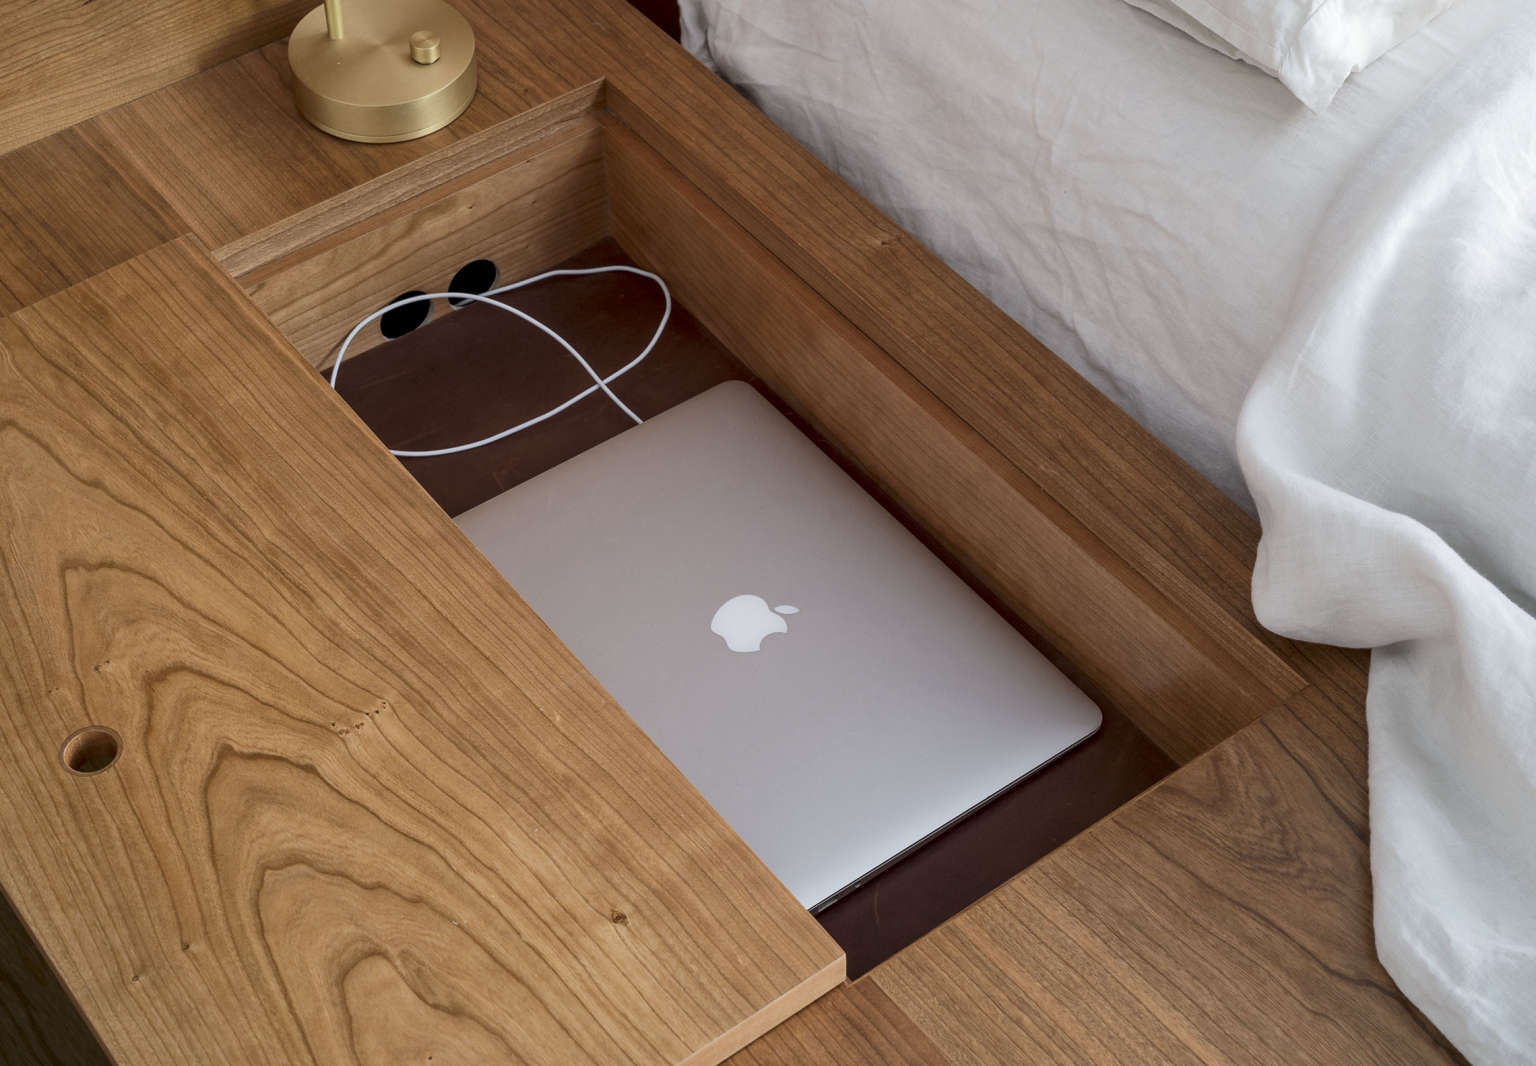 Aha! Design: An Electronics Charging Drawer - The Organized Home